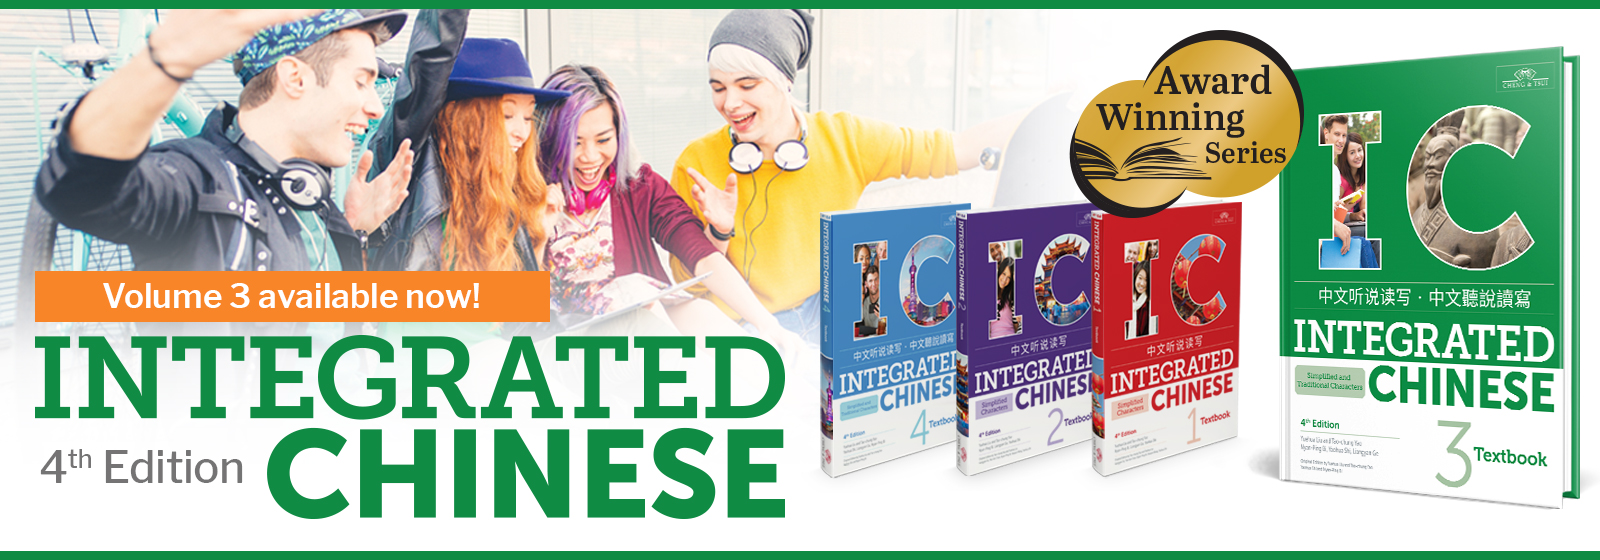 Integrated Chinese 4th Edition - Volume 3 available now!